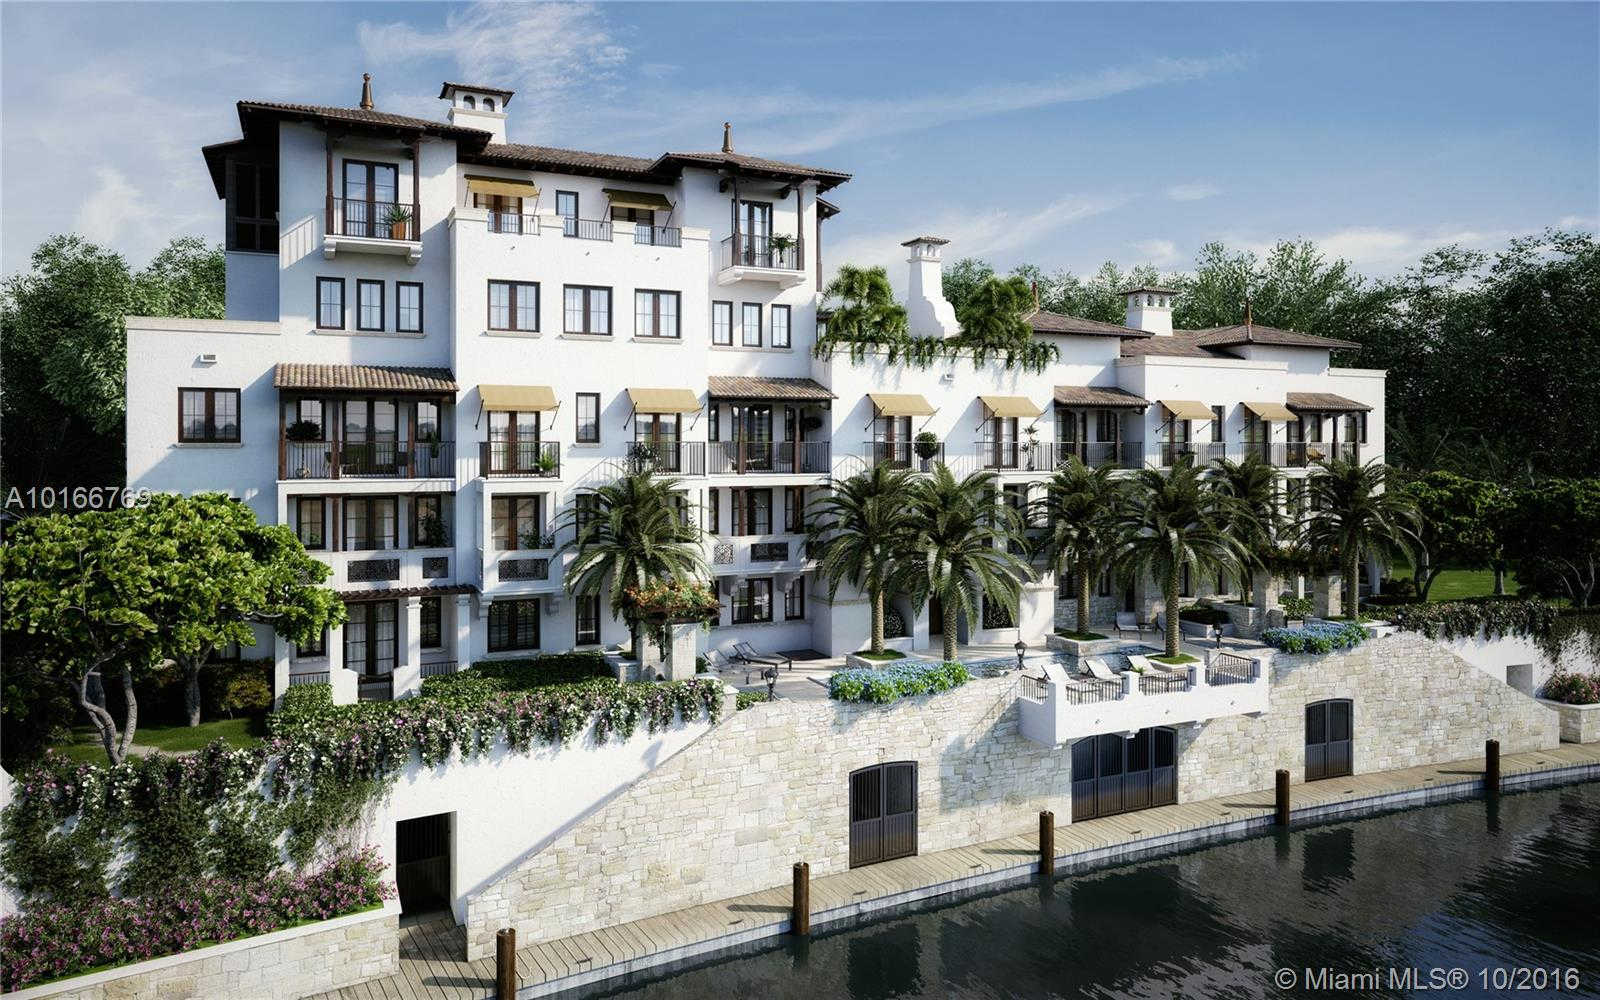 6100 Caballero Blvd #2C Flat, Coral Gables, FL 33146 now has a new price of $2,607,260!